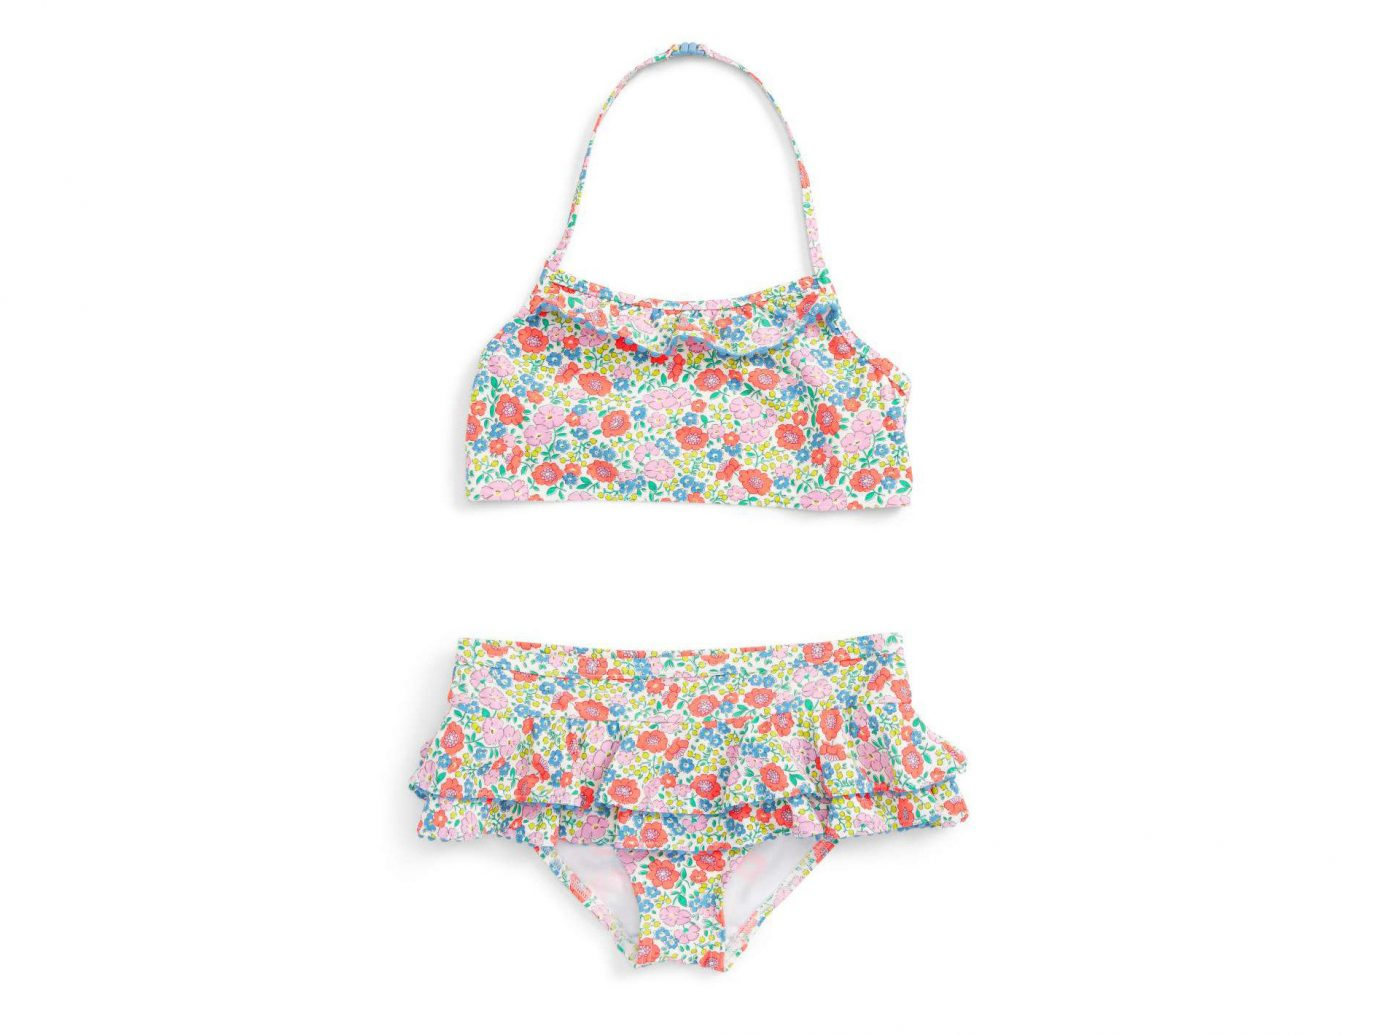 Style + Design clothing product swimwear bag shoulder bag handbag swimsuit top swimsuit bottom Design pattern one piece swimsuit